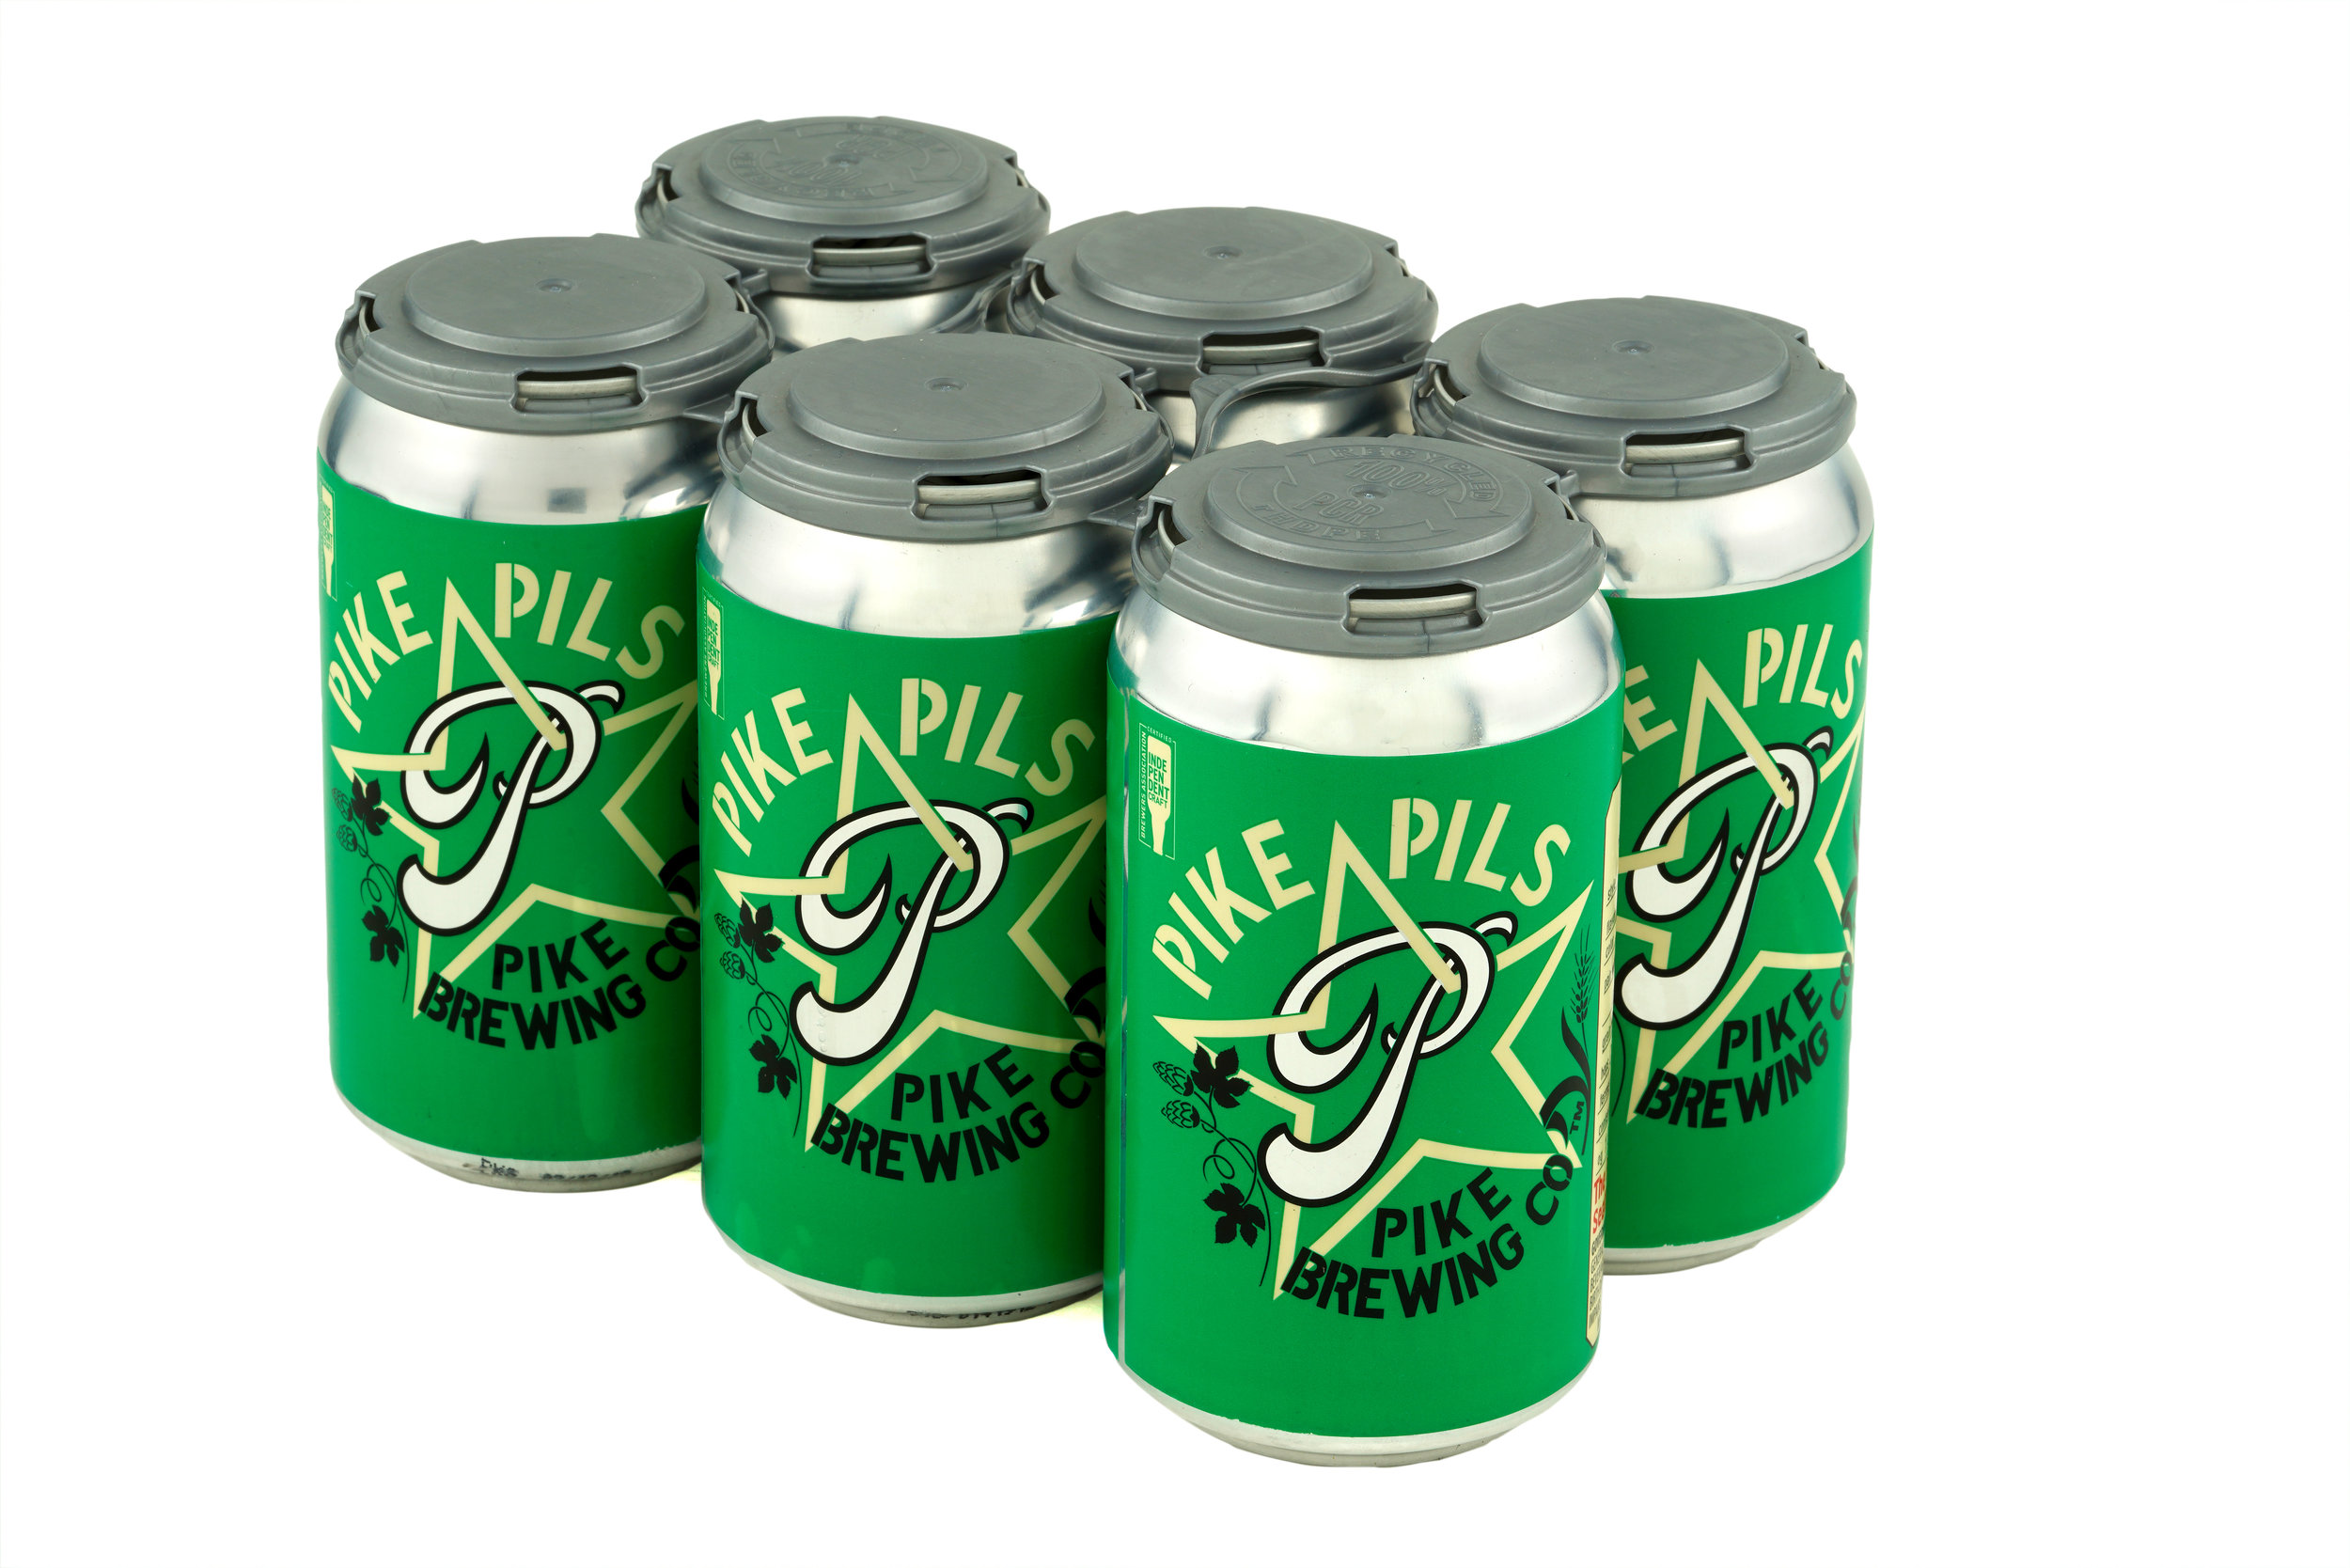 Pike Pils cans